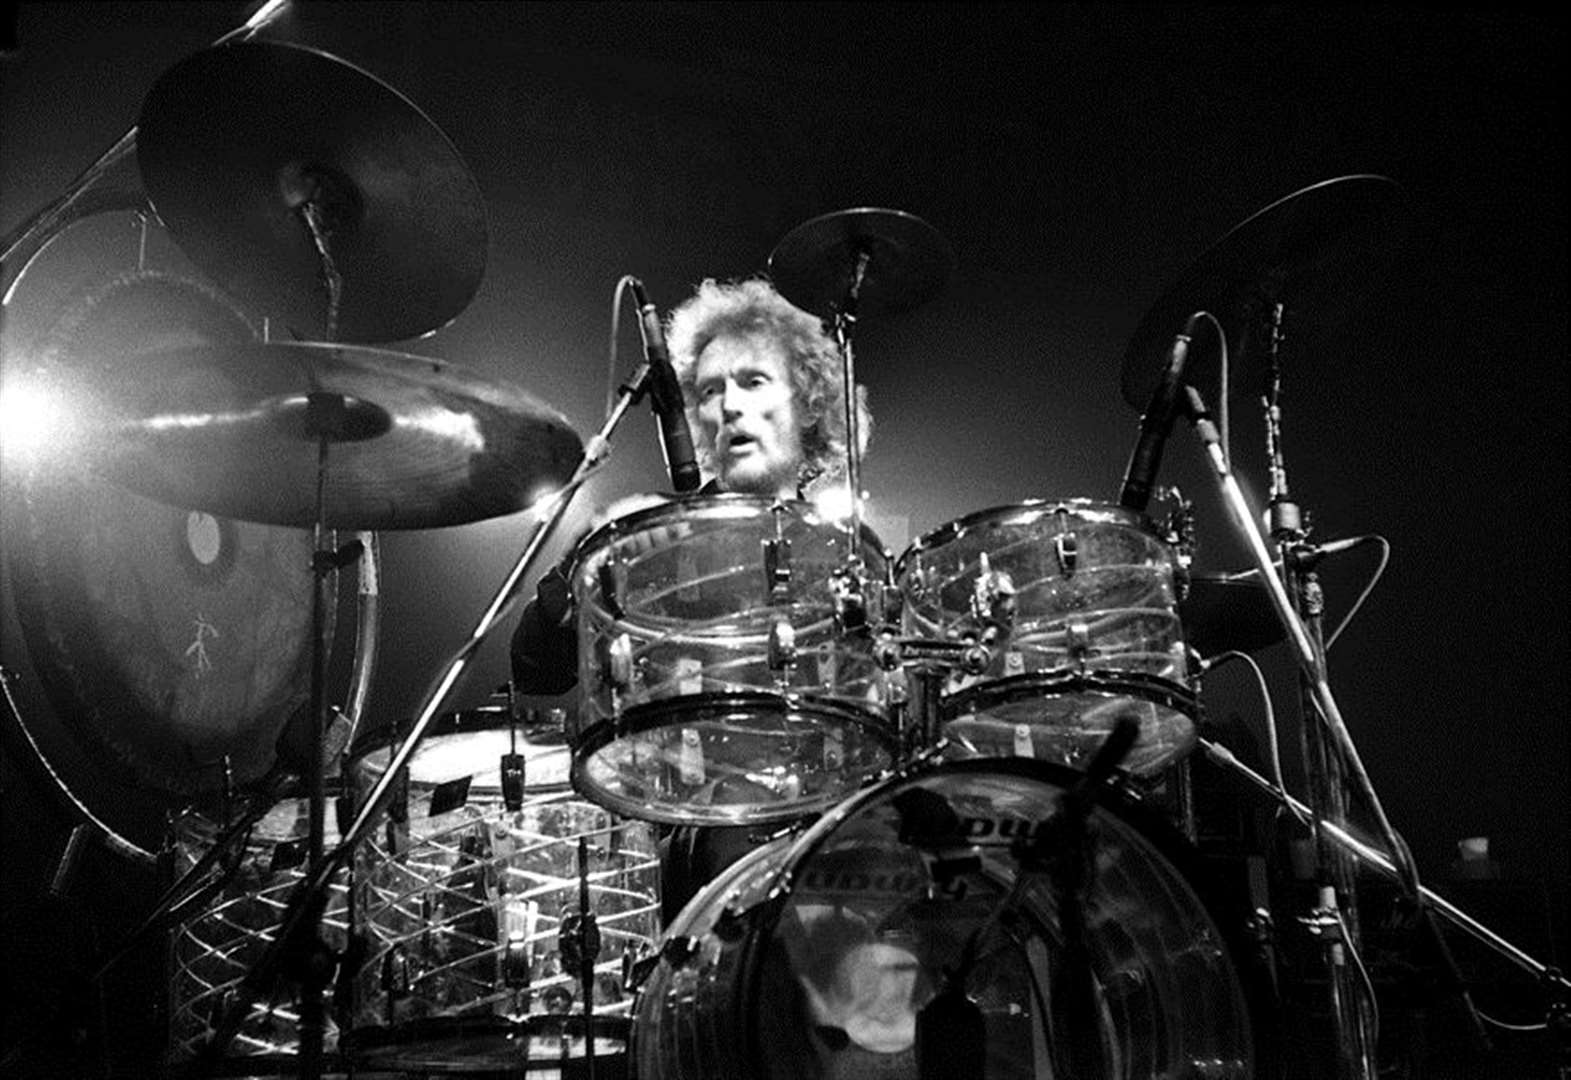 An evening with Ginger Baker's daughter